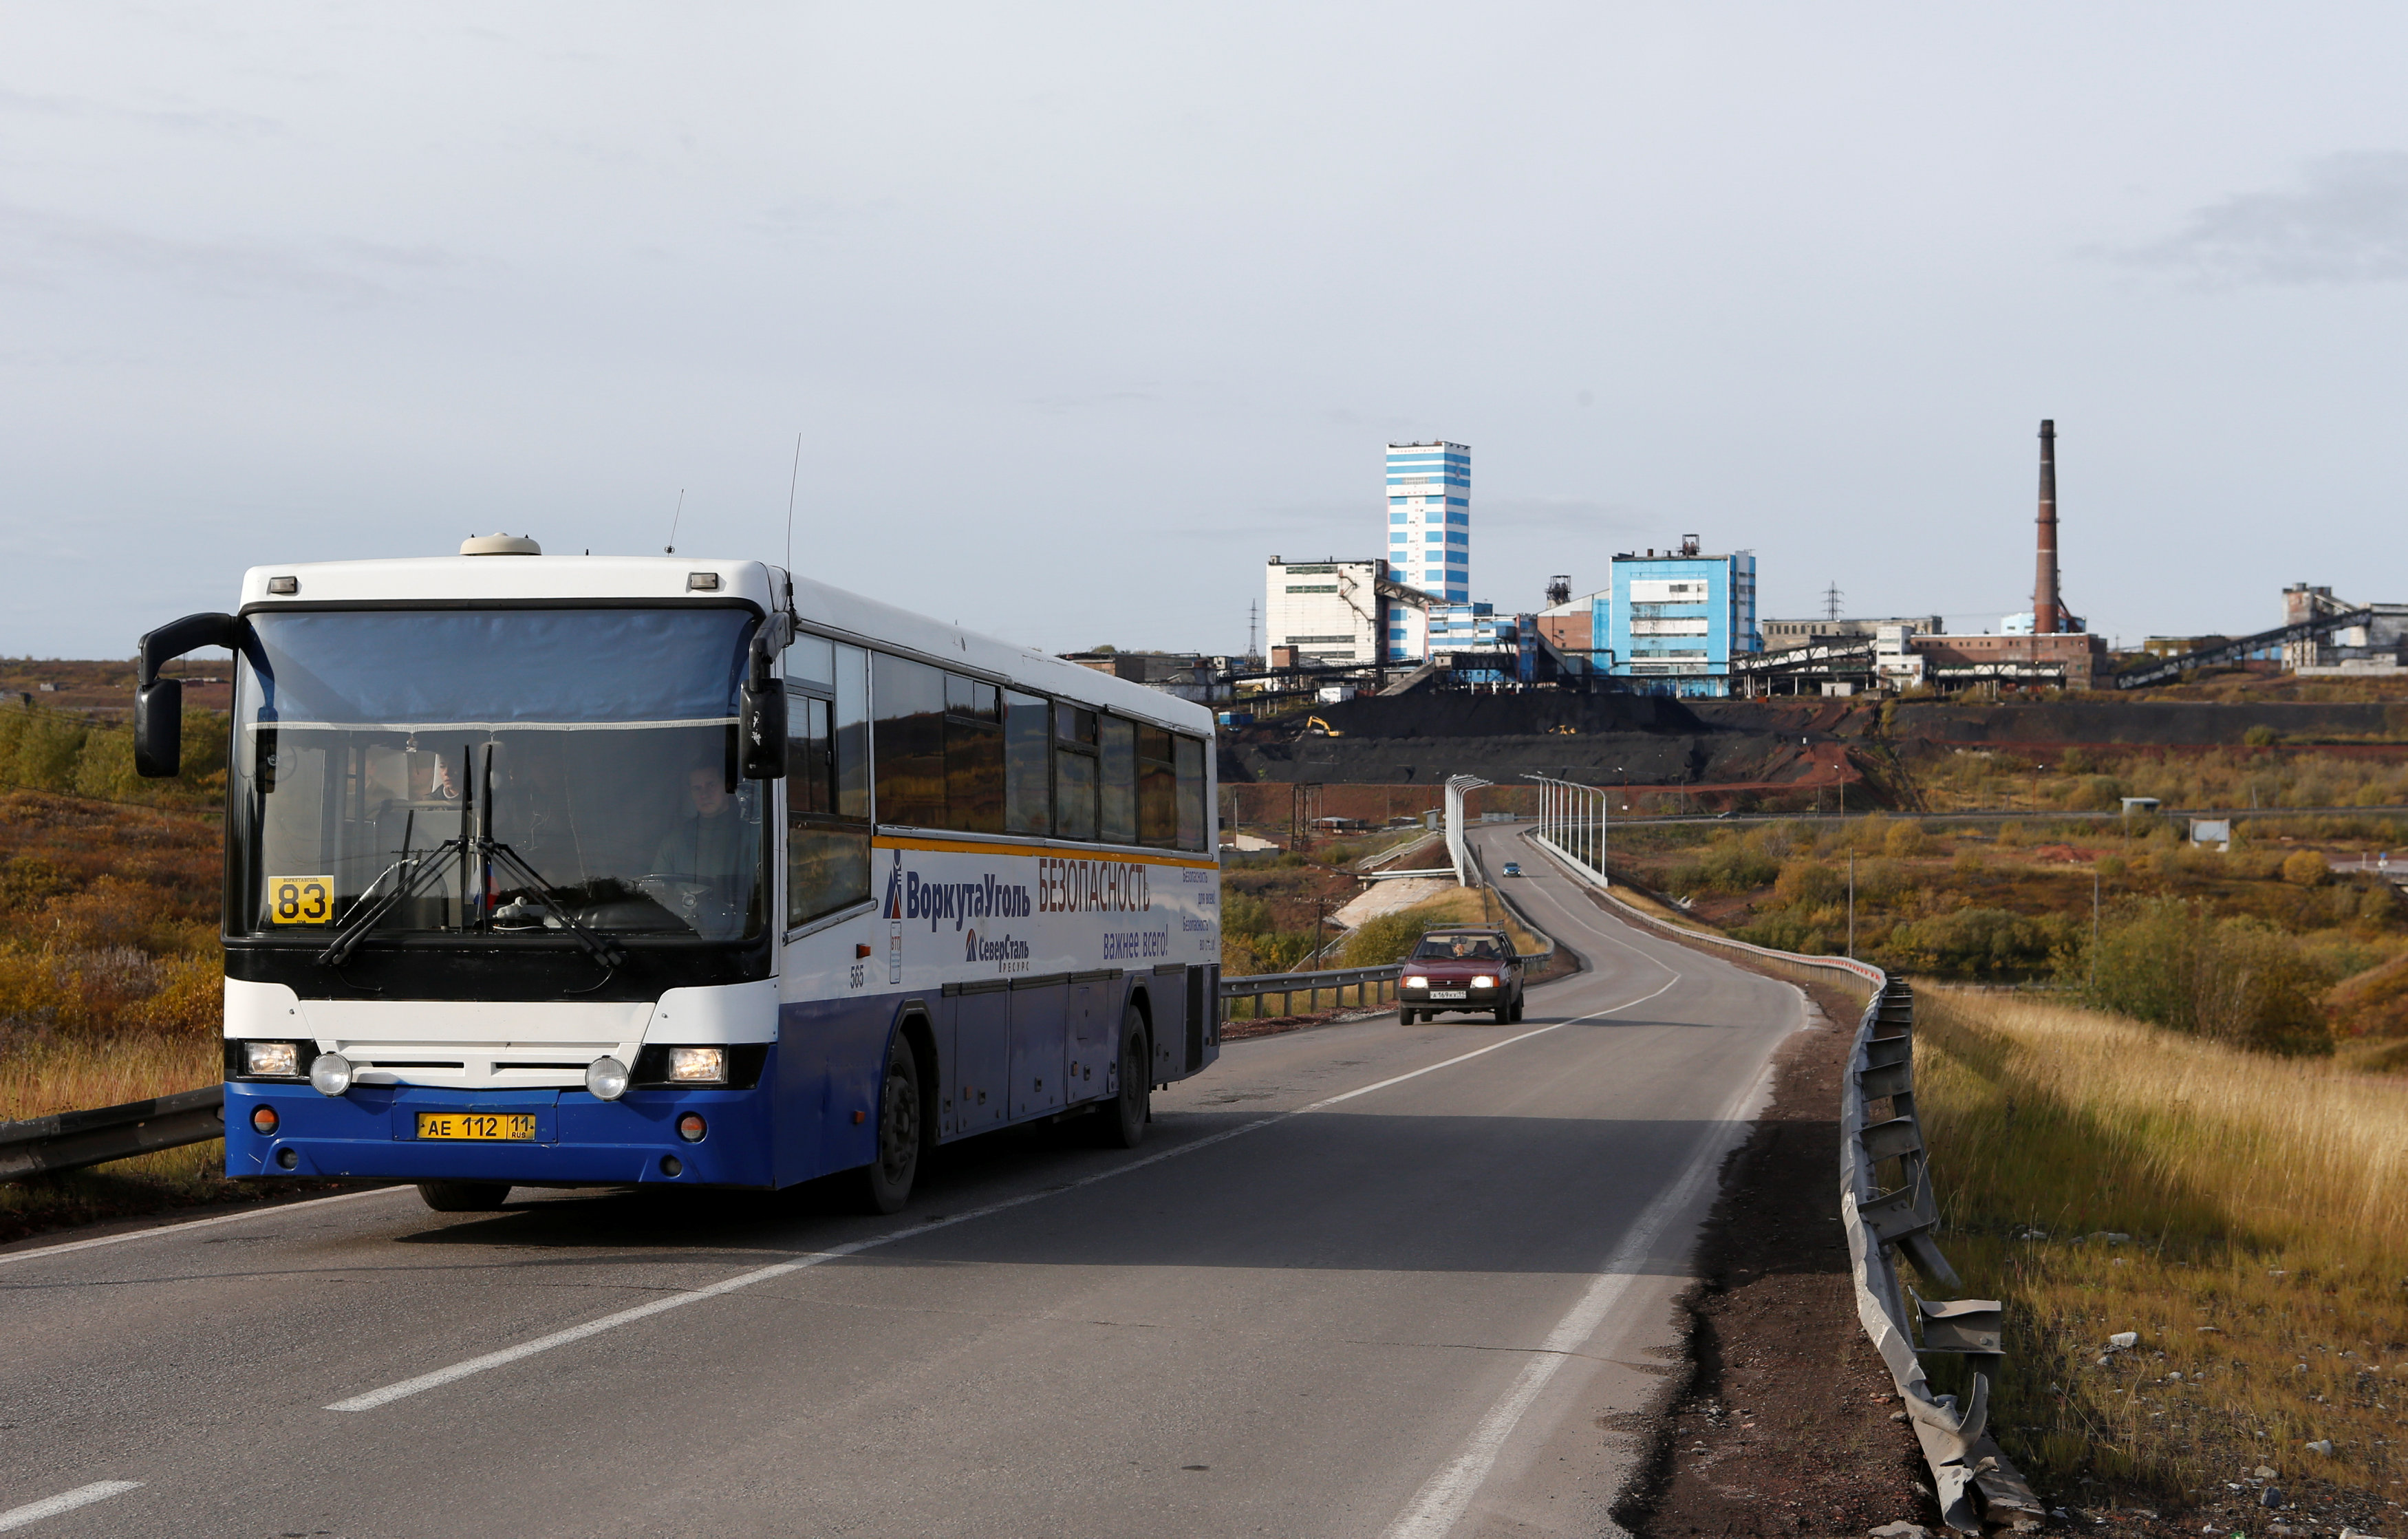 A bus, transporting employees of Vorkutaugol company, is seen on a motorway, which connects Vorkutinskaya coal mine and the city of Vorkuta